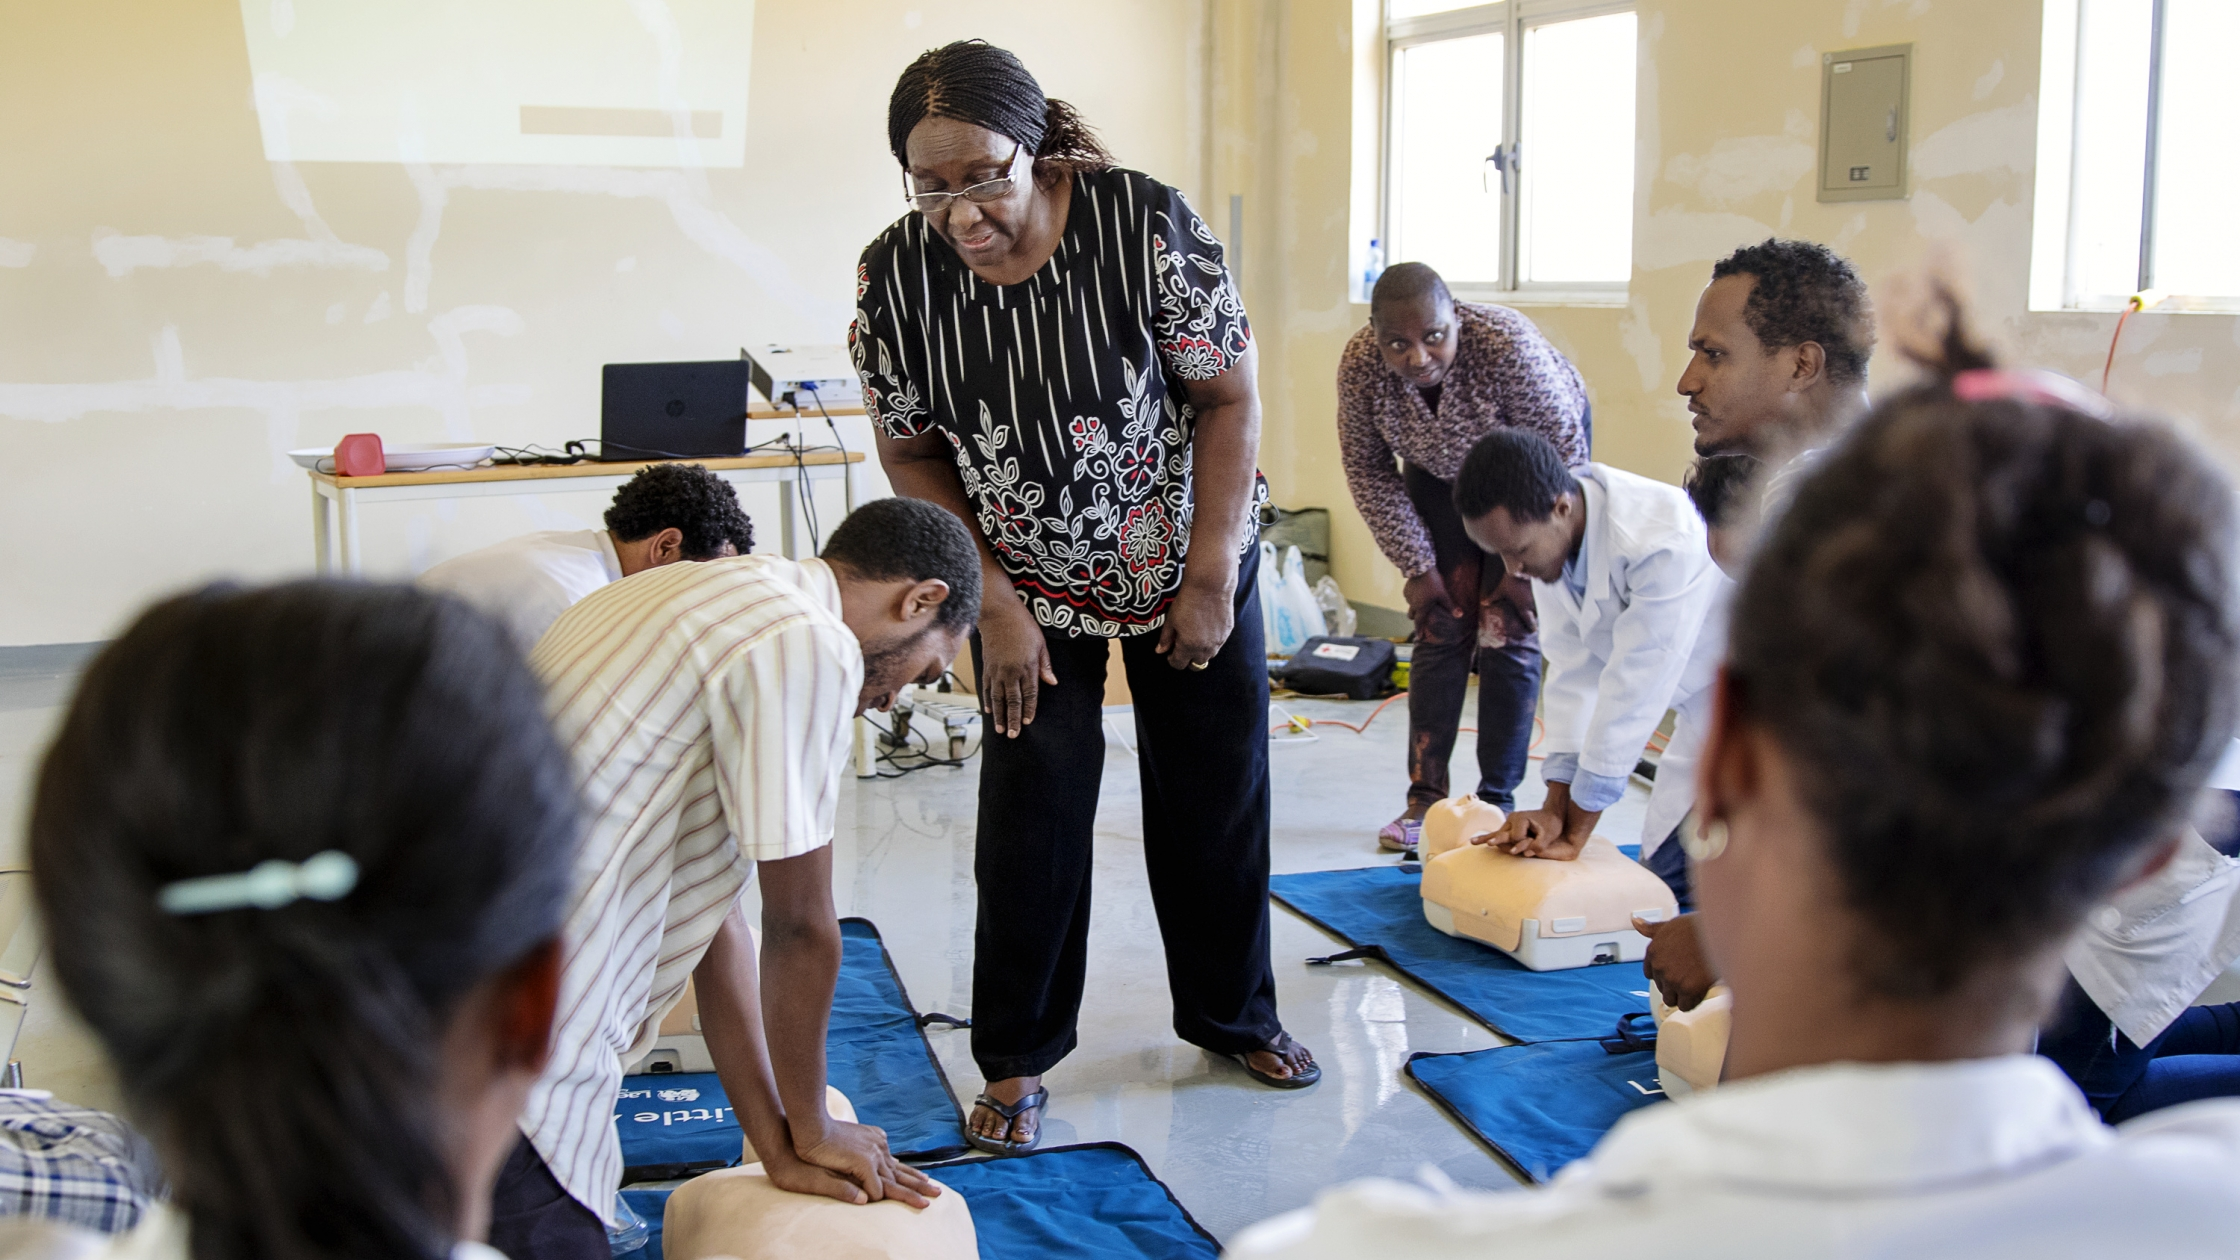 Operation Smile volunteer nurse and AHA instructor Florence Mangula teaches CPR to medical professionals in Jimma, Ethiopia.